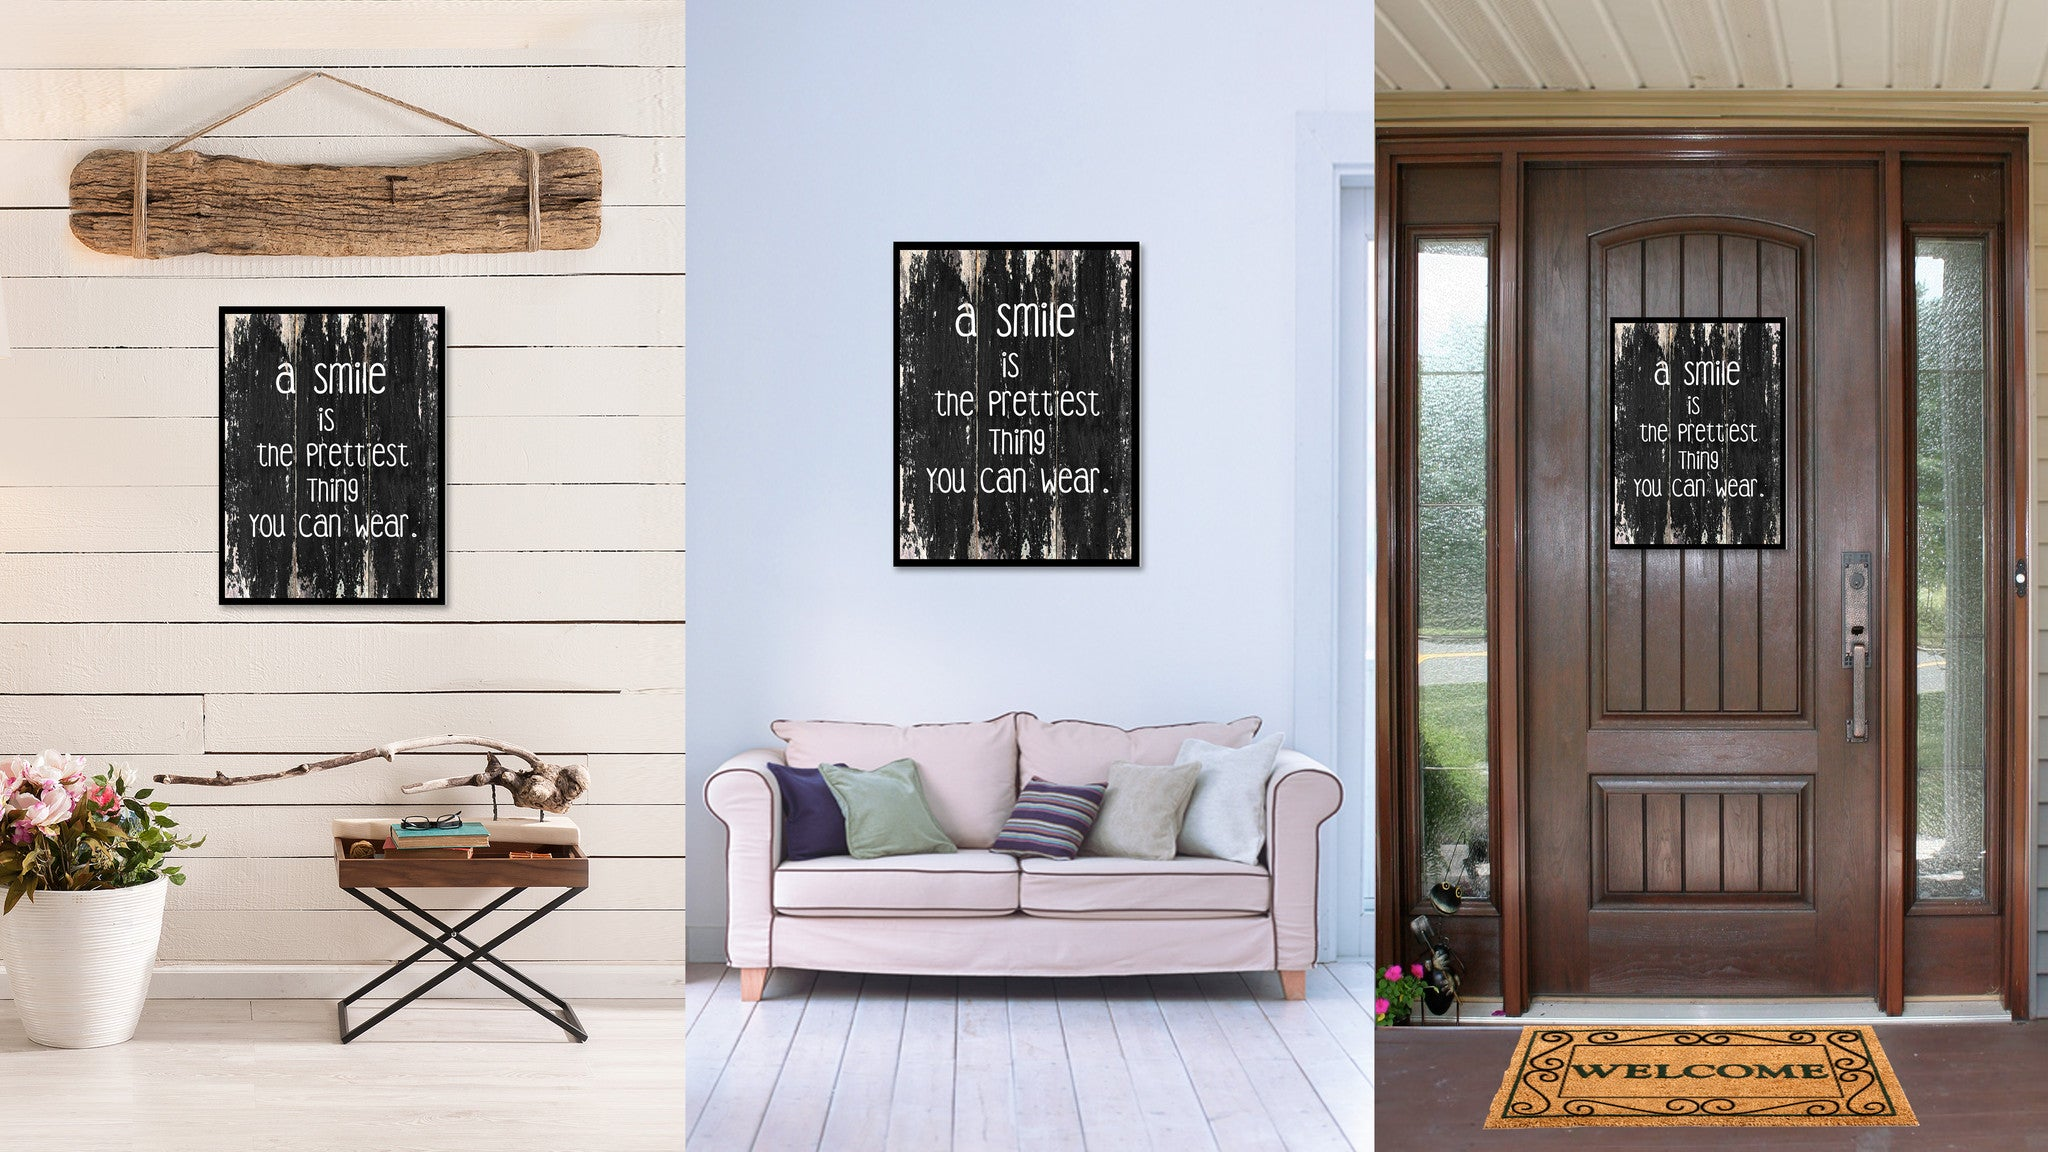 A smile is the prettiest thing you can wear Motivational Quote Saying Canvas Print with Picture Frame Home Decor Wall Art